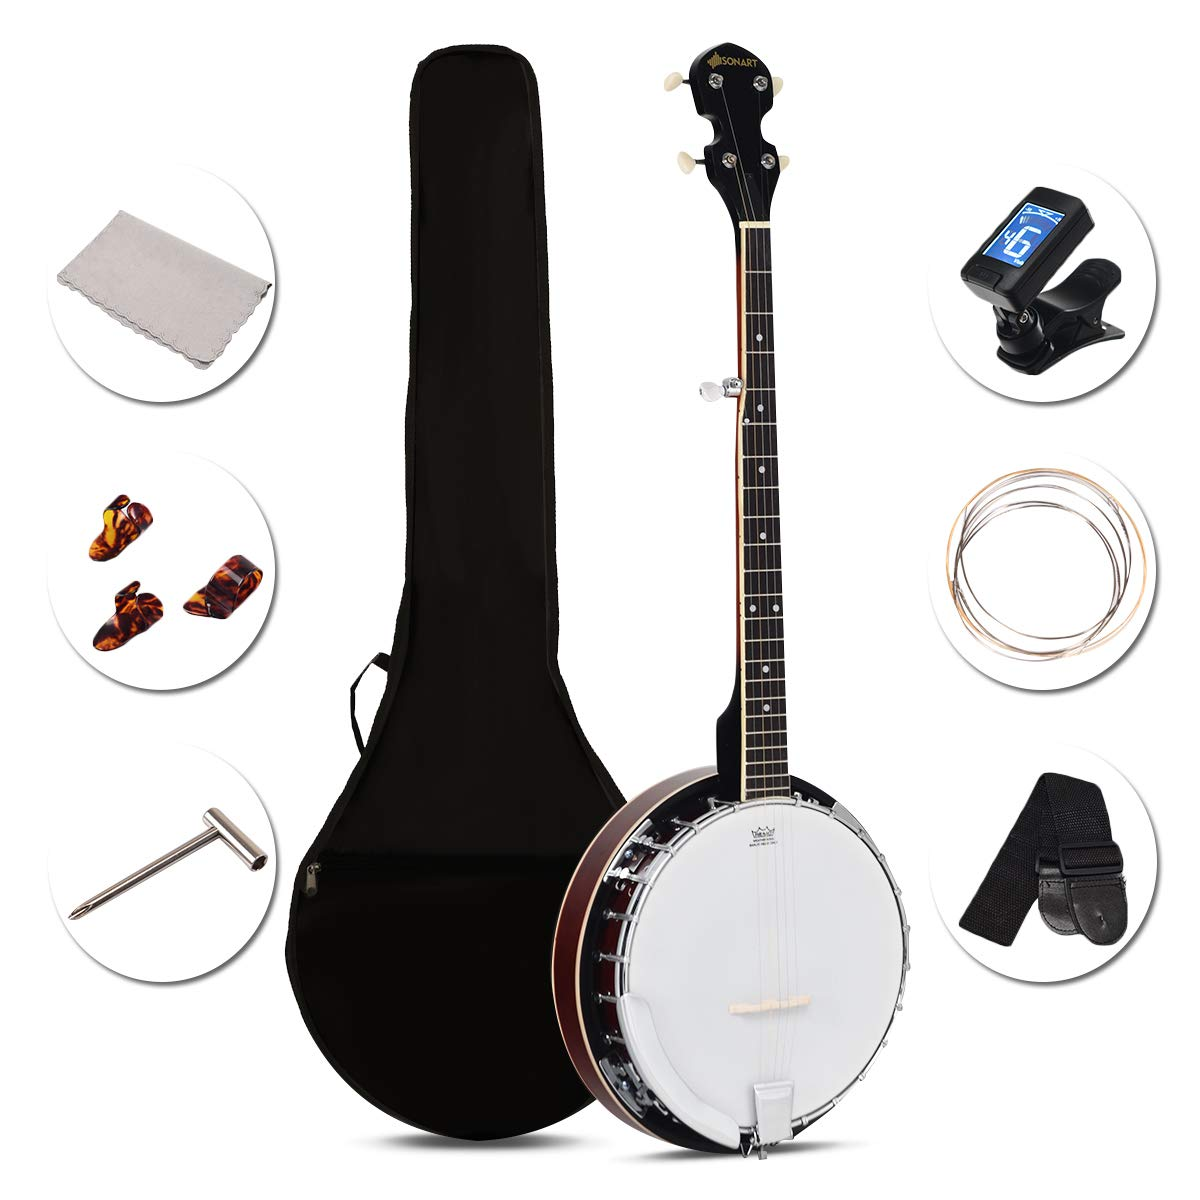 Sonart 5-String Banjo 24 Adjustable Brackets, Mid-range Closed Handle and Mid-range Steel Wire in Plywood Frame, Fingerboard, Include 420D Oxford Cloth Bag, One Strap, Wiper, 3 Picks by Sonart (Image #1)